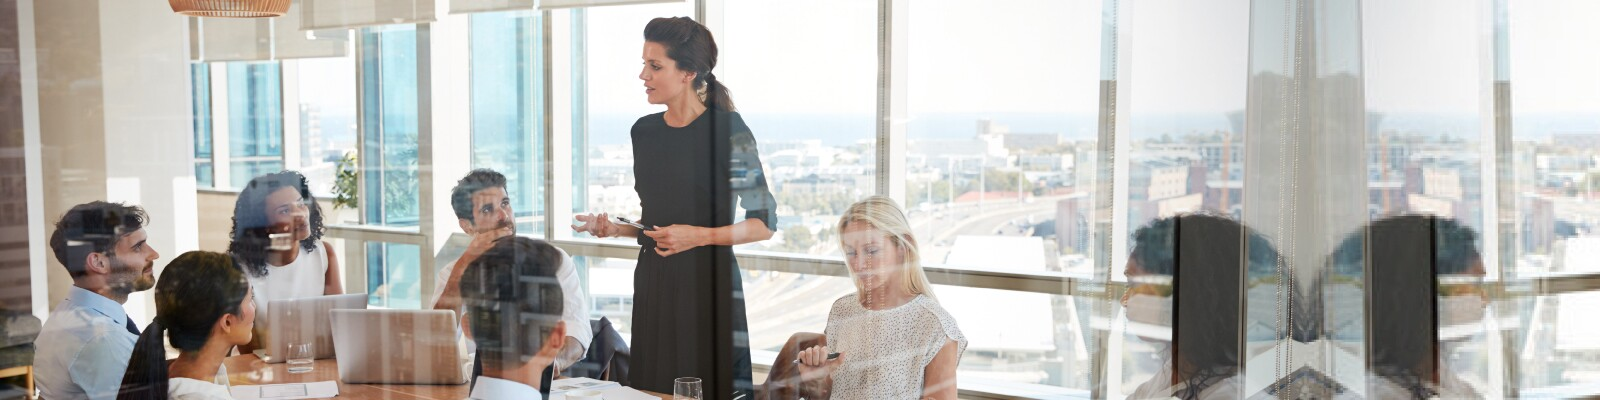 Woman leads a meeting standing up at the table in conference room